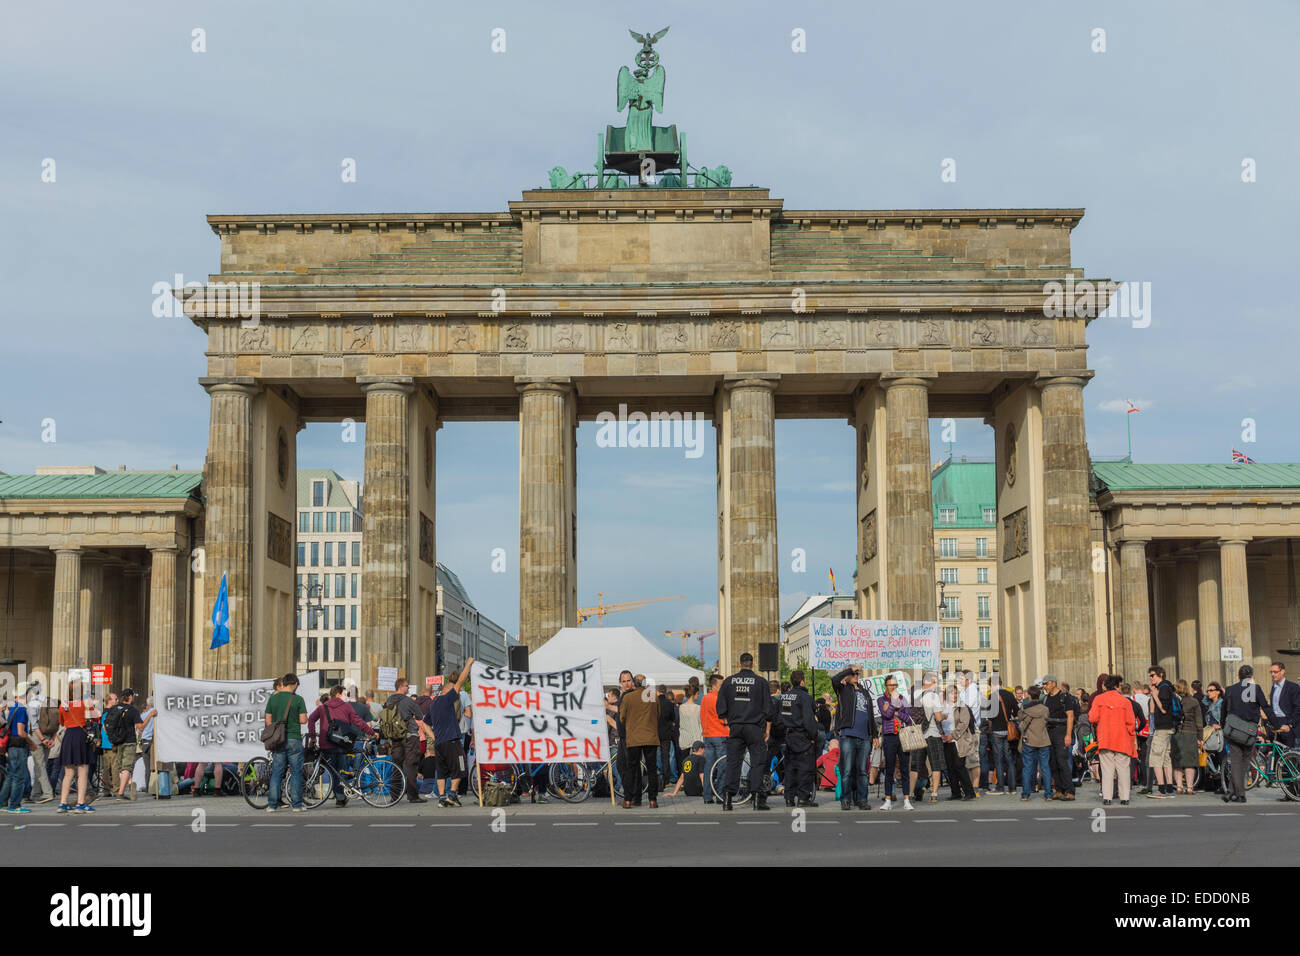 Anti-Kriegs-Demonstration am Brandenburger Tor, Berlin, Deutschland Stockbild